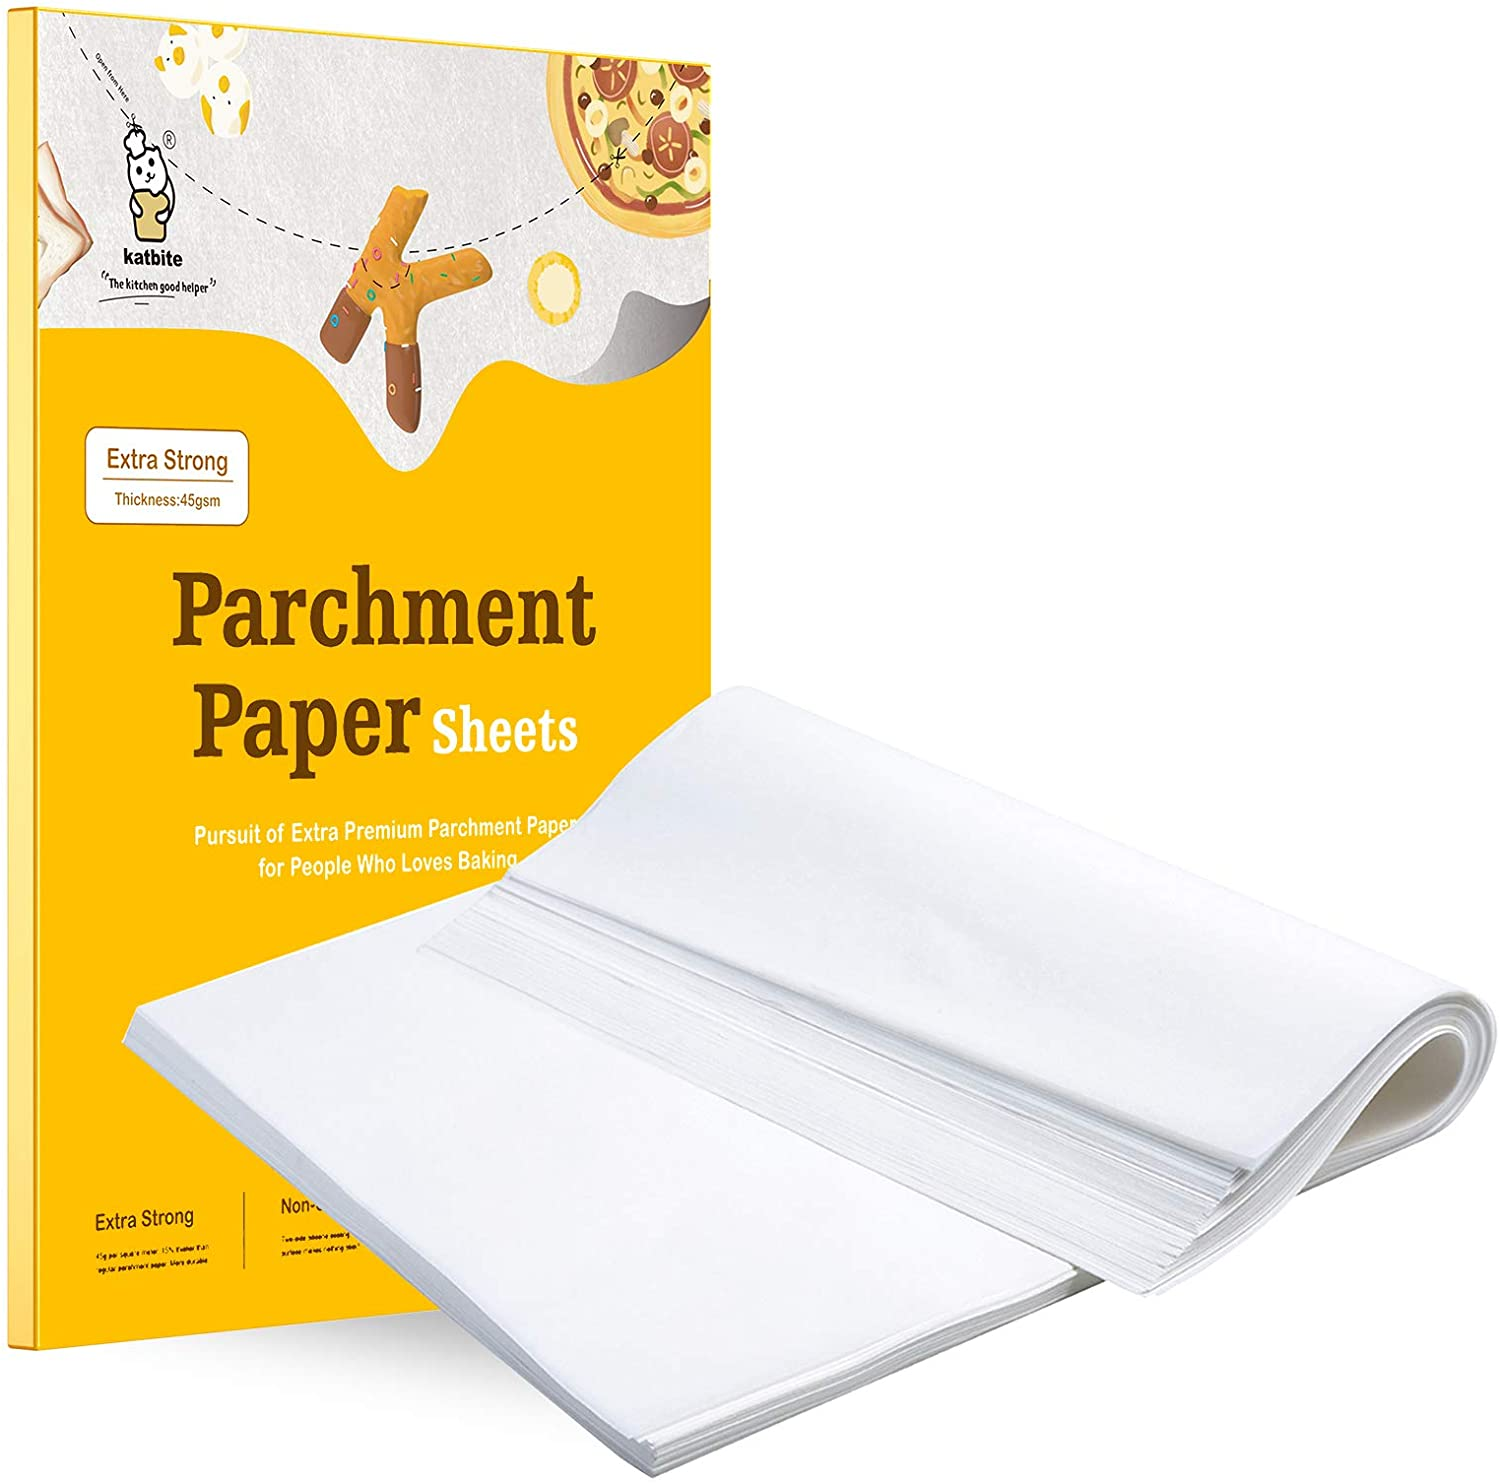 Silicon Coated White Greaseproof Oven Paper for Professional Baking Cooking /& Freezing Baking Paper Parchment Roll 300mm x 50m